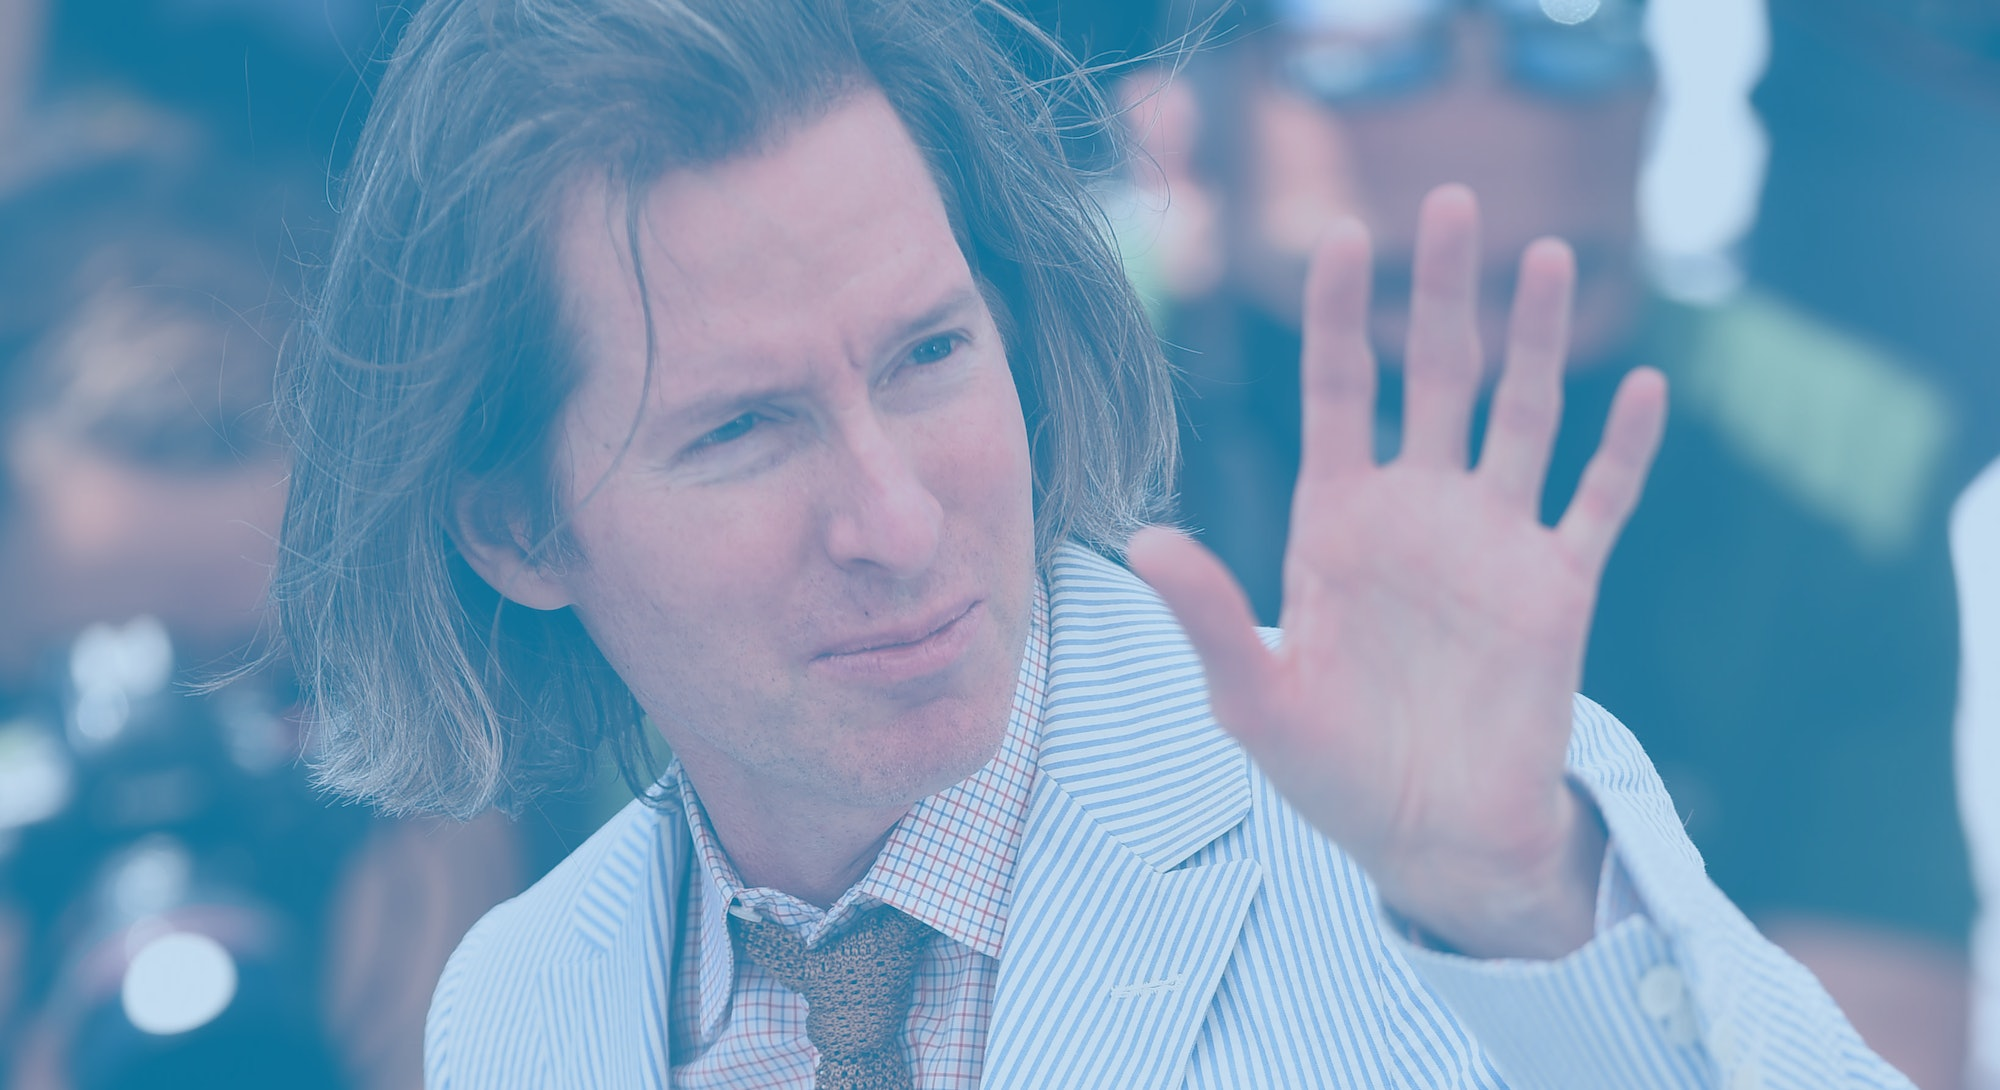 Wes Anderson at Cannes 2021.